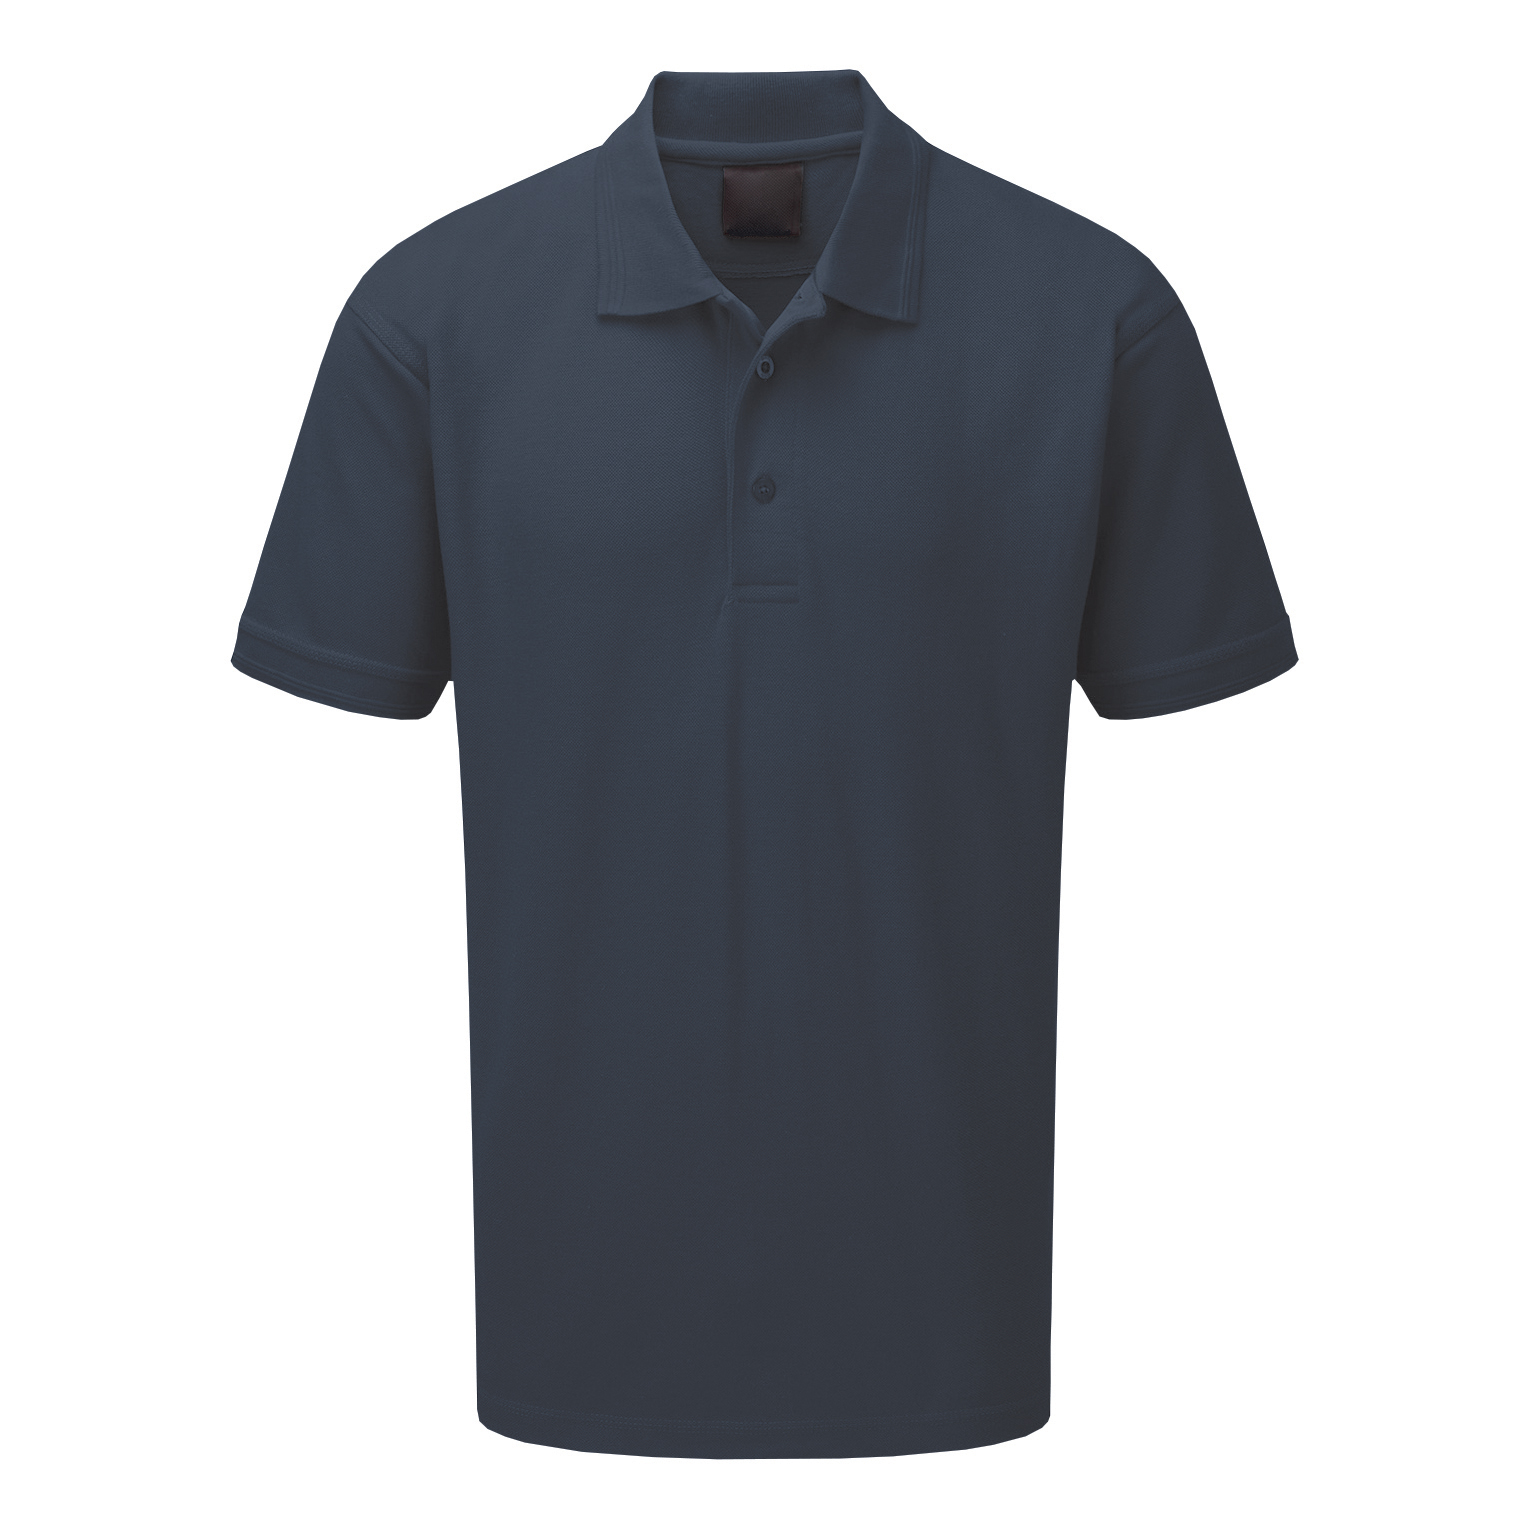 Click Workwear Polo Shirt Polycotton 200gsm Small Graphite Ref CLPKSGYS *Approx 3 Day Leadtime*